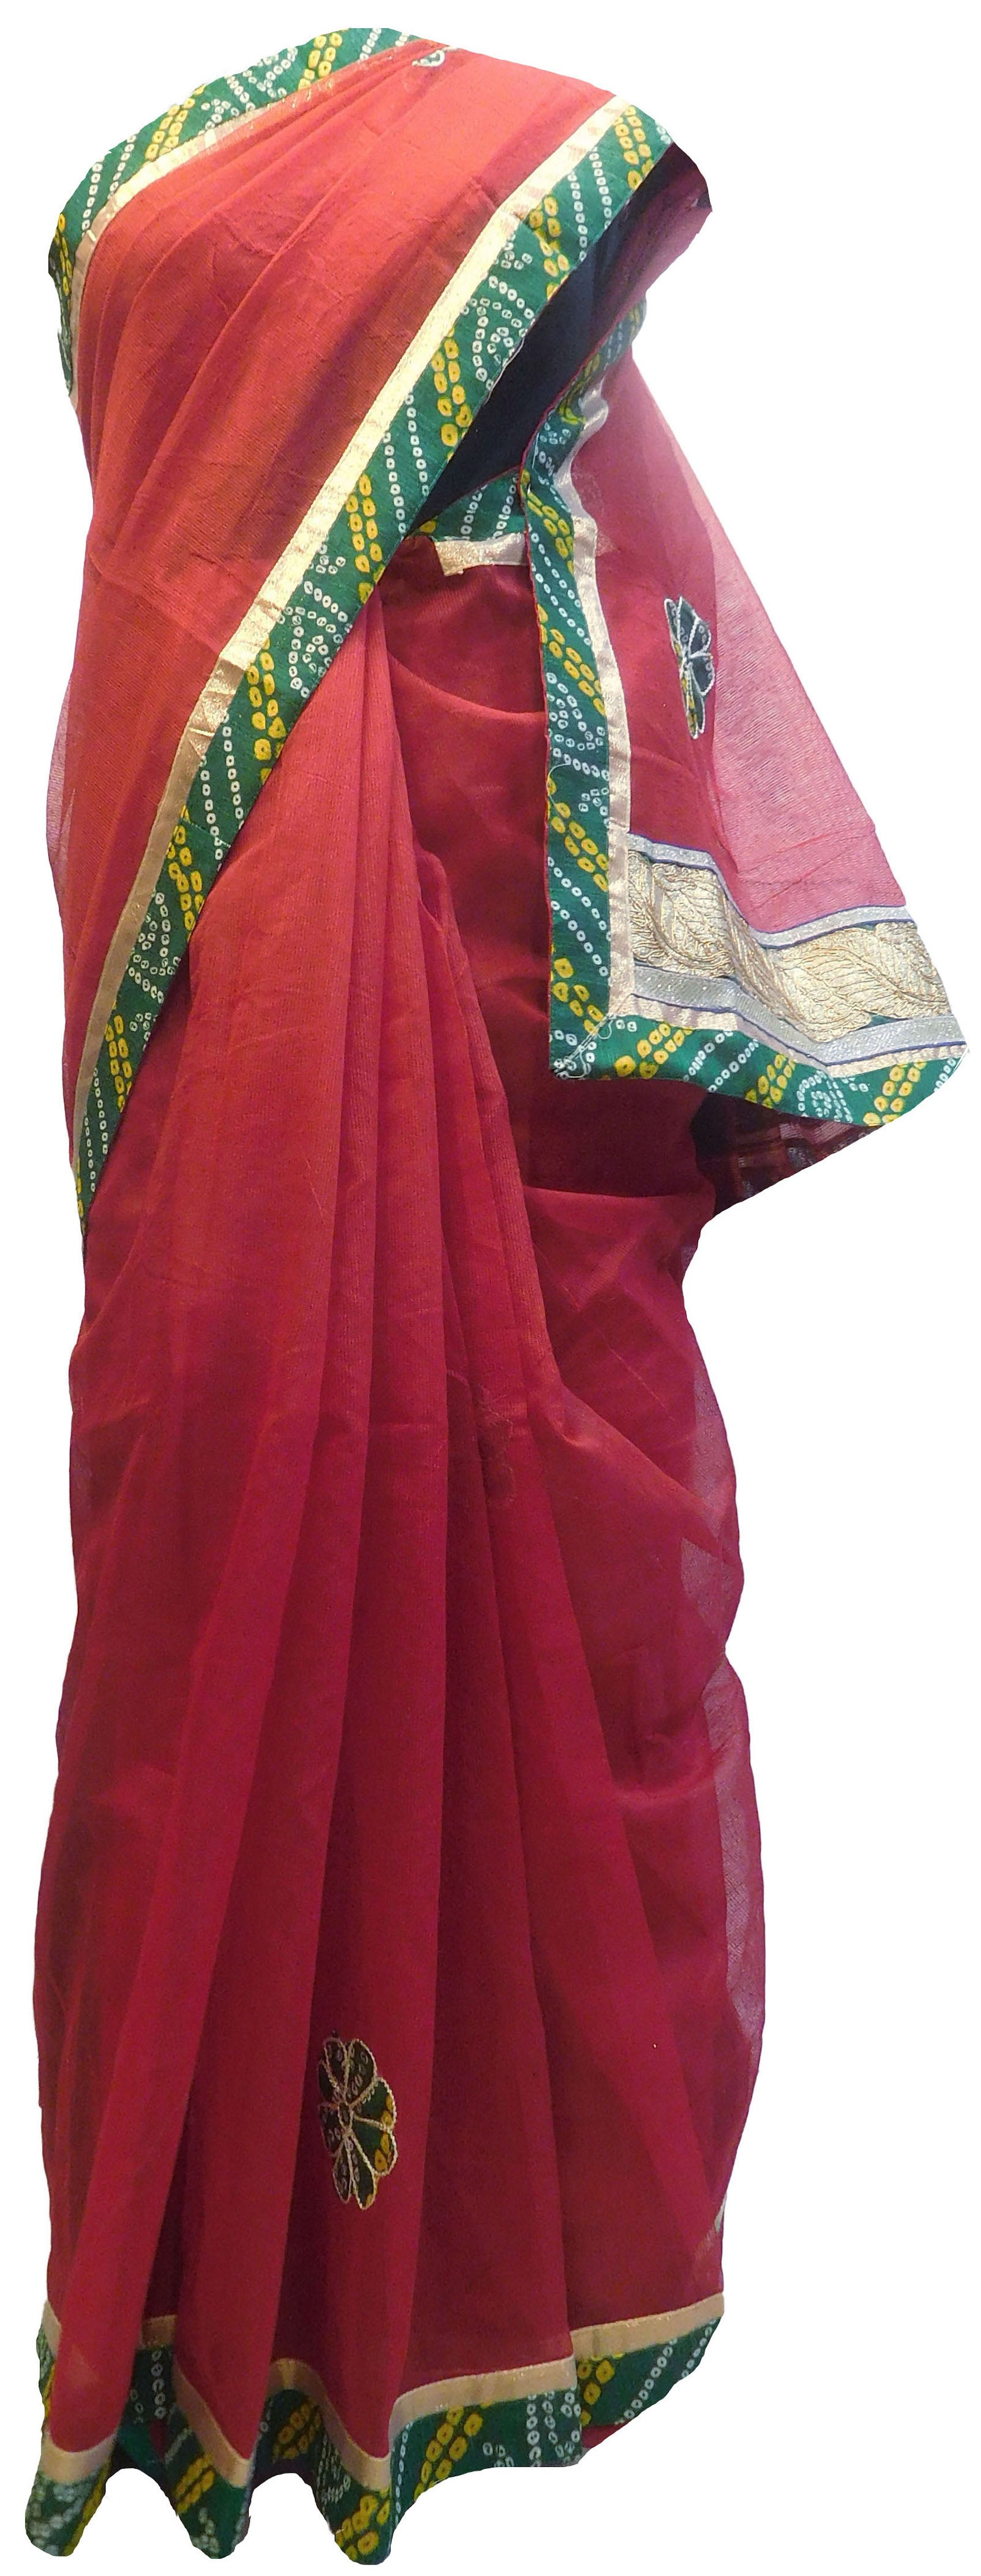 Red Designer PartyWear Pure Supernet (Cotton) Thread Gota Work Kolkata Saree Sari E568